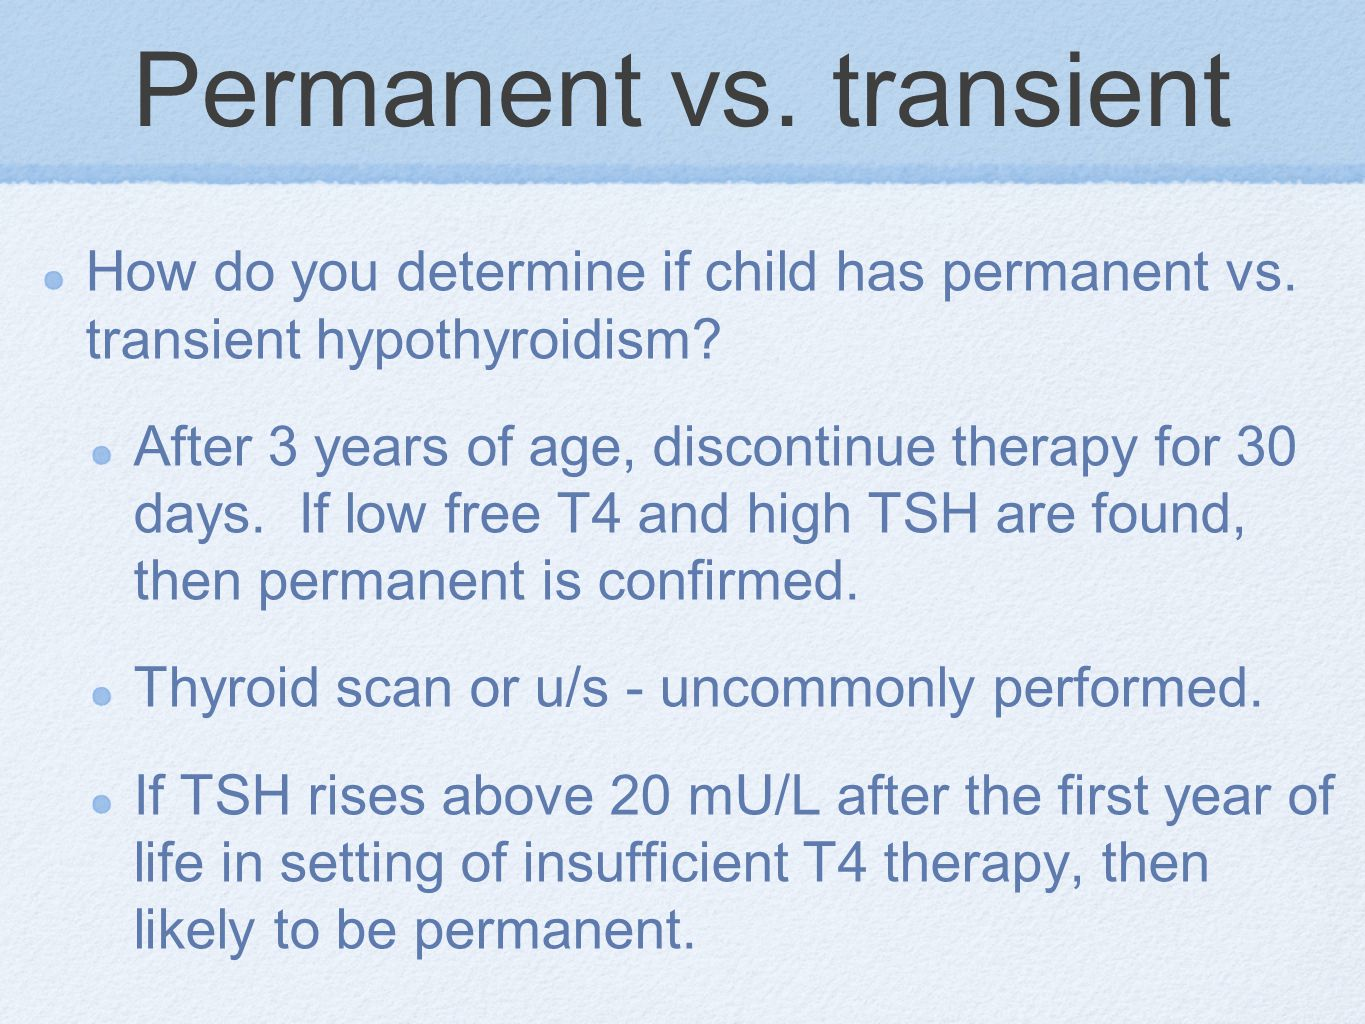 Permanent vs. transient